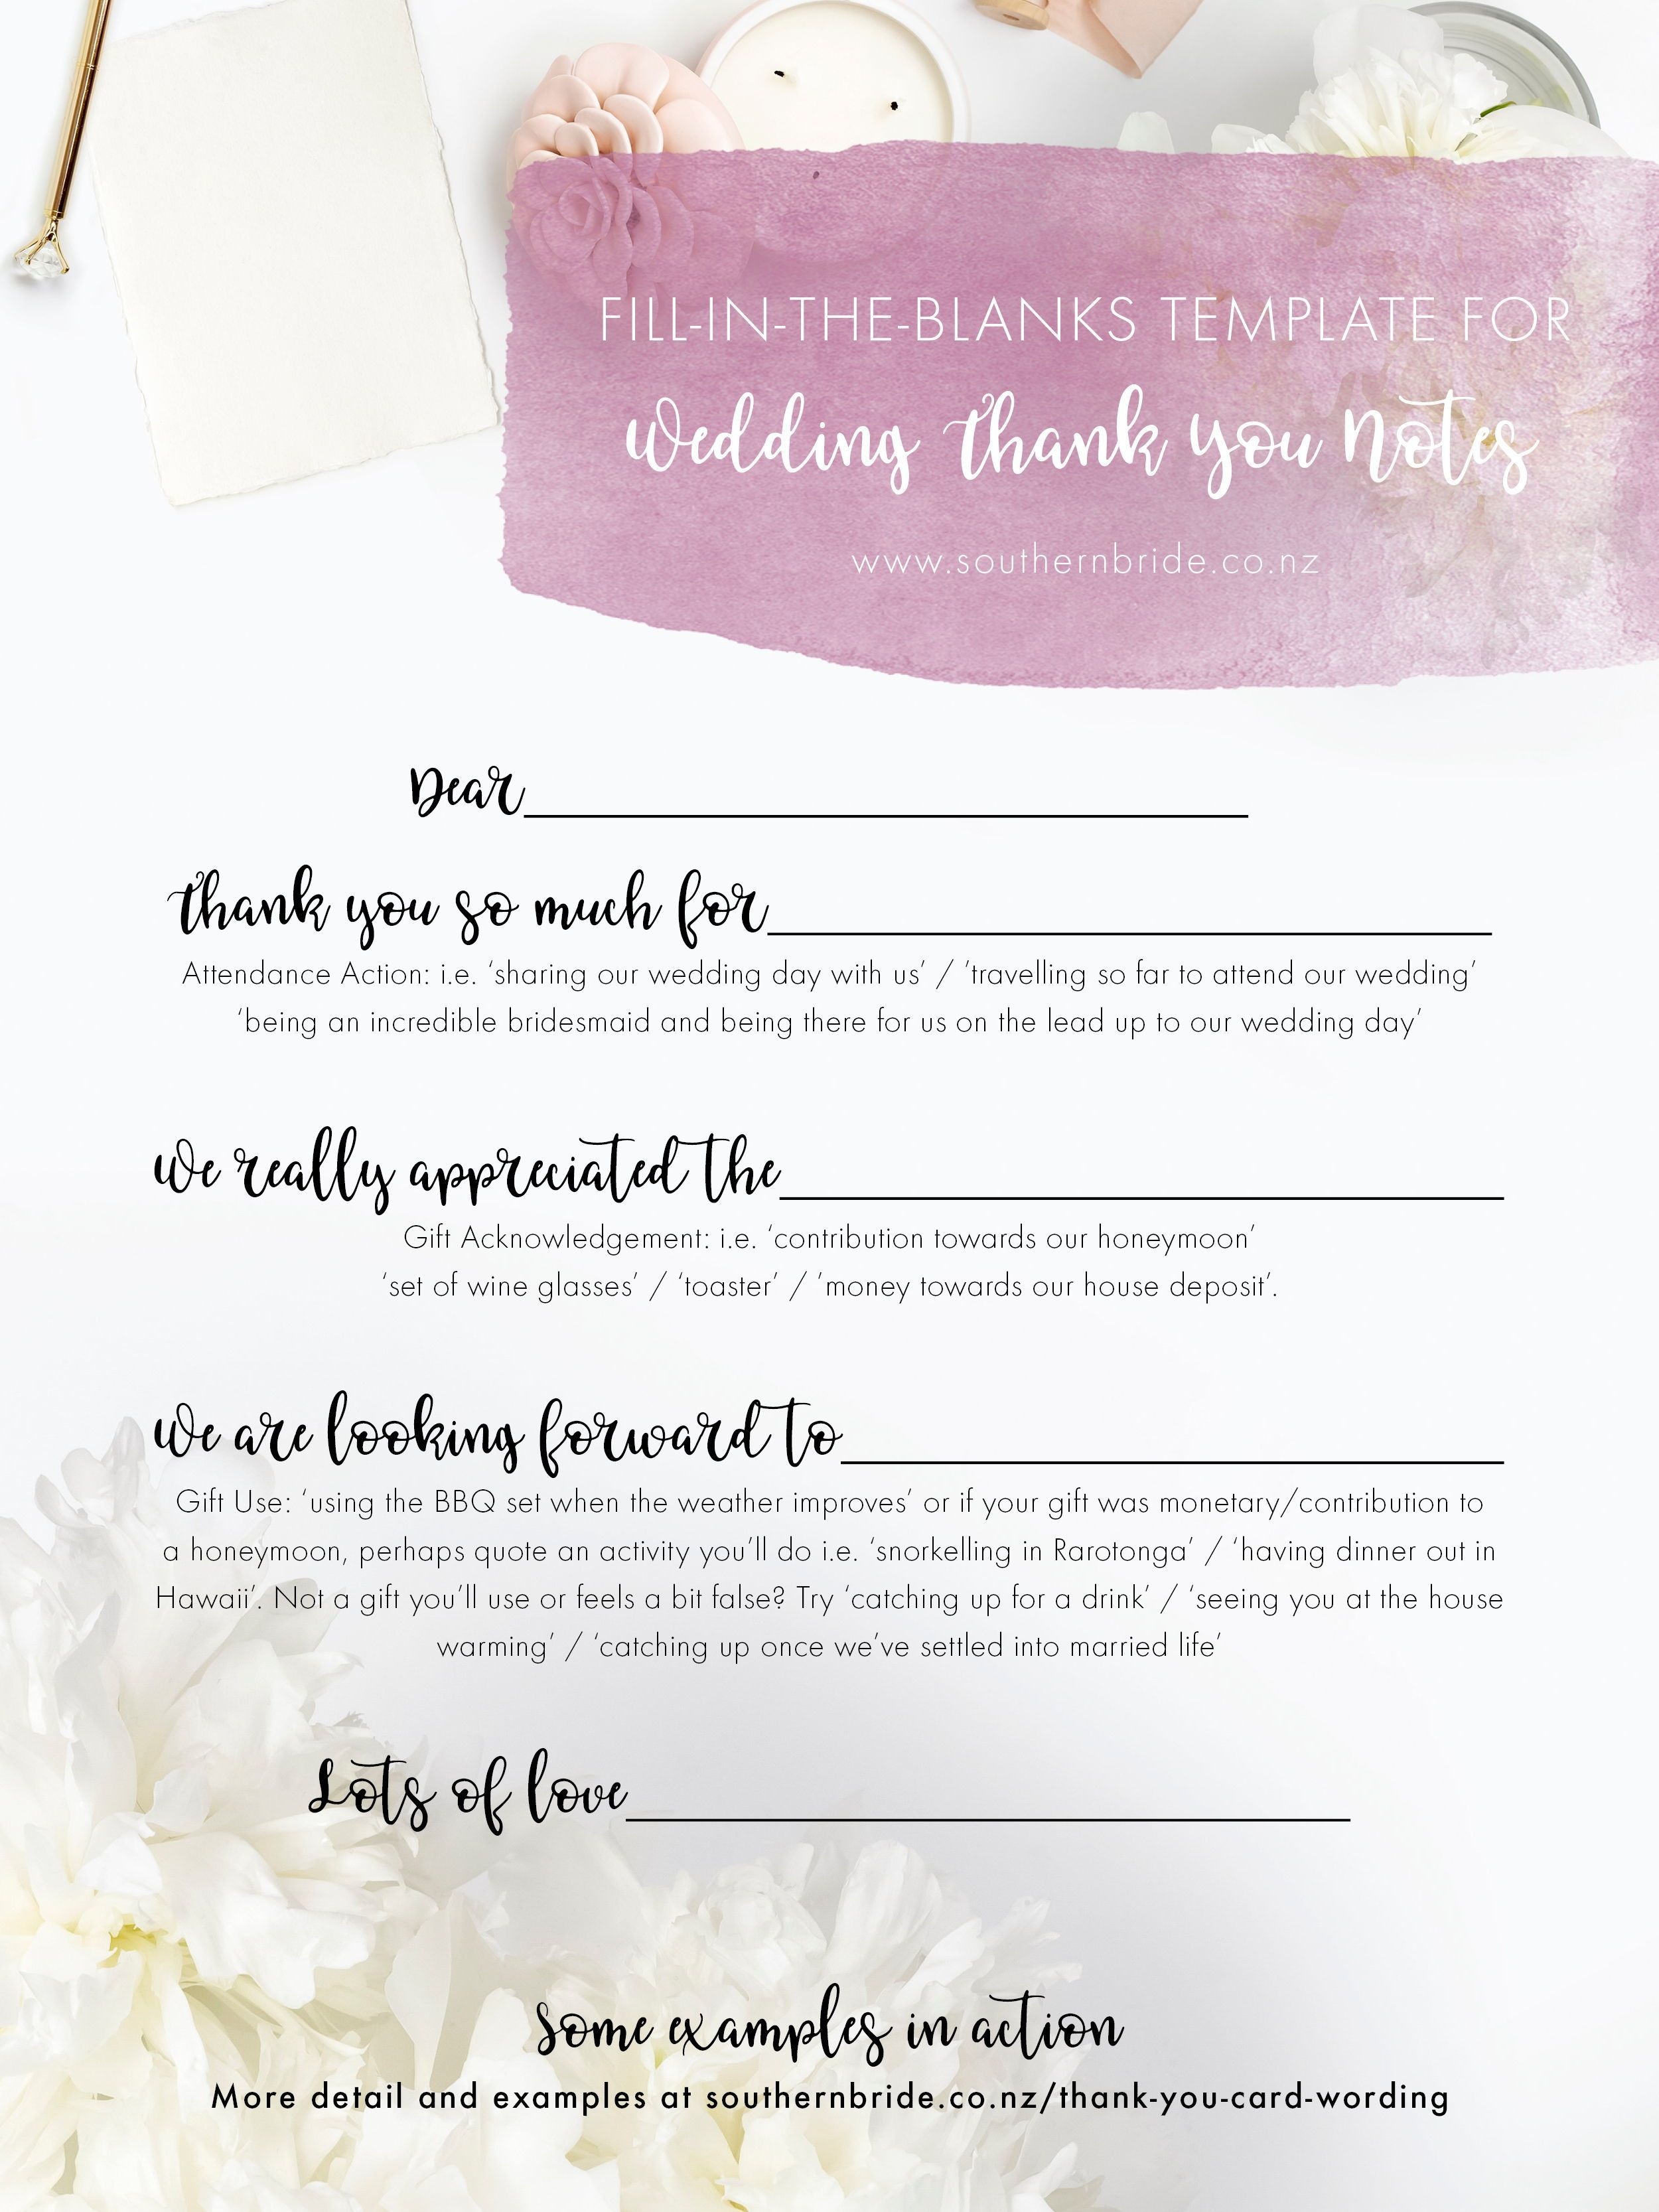 003 Unusual Thank You Note Template For Money Picture  Card Wording Wedding Example Donation GraduationFull